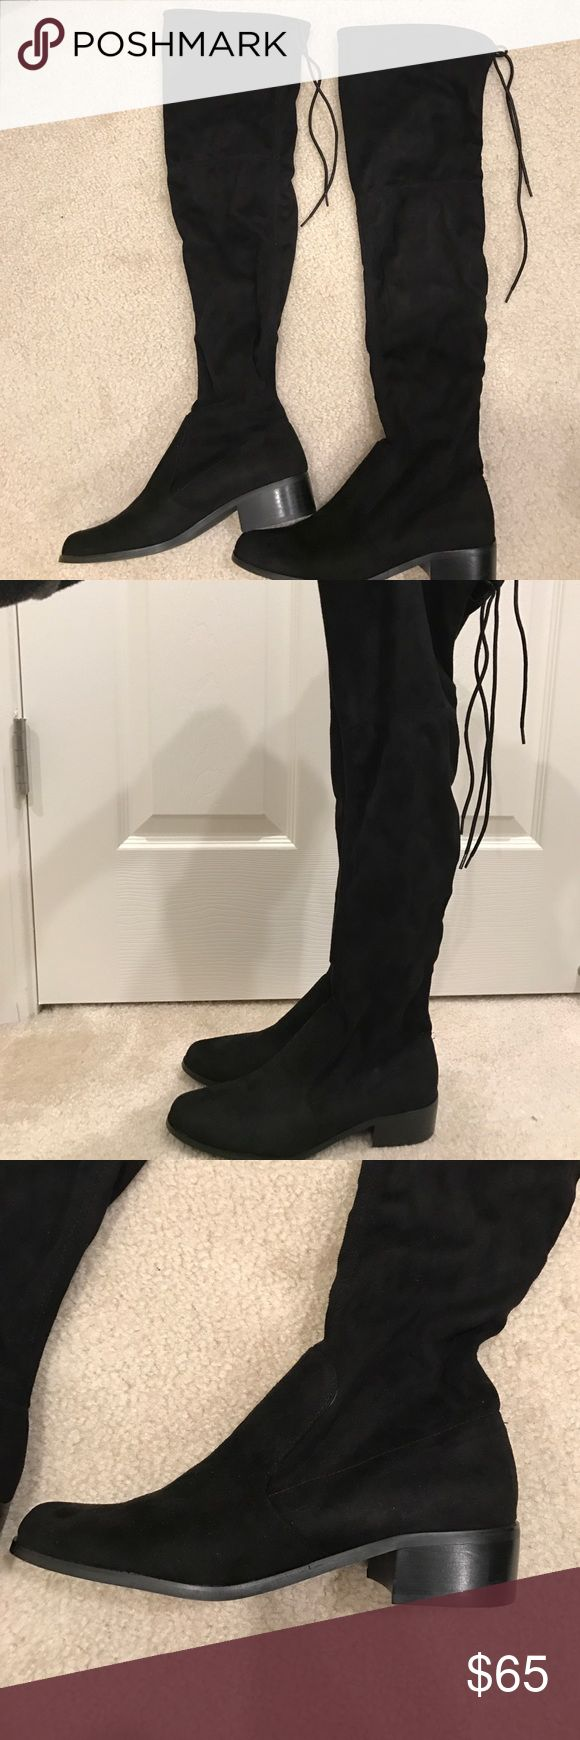 Charles by Charles David OTK suede boot (New!) New Charles by Charles David over the knee suede boot. No box. Charles David Shoes Over the Knee Boots